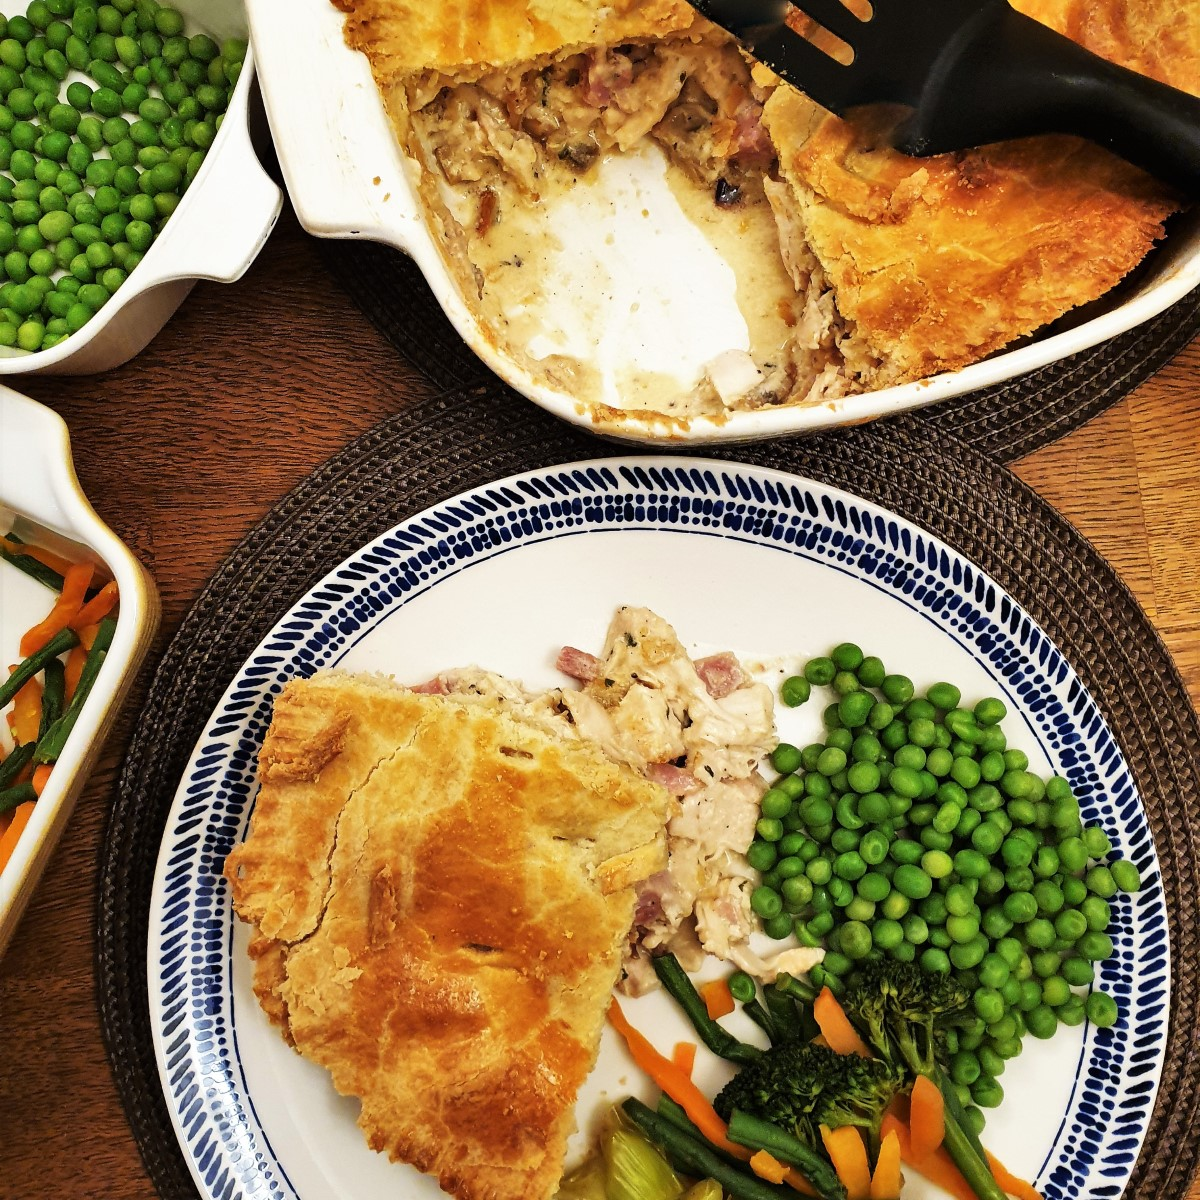 Overhead shot of a plate of chicken and ham pie  with vegetables, next to the dish of pie with a slice removed..